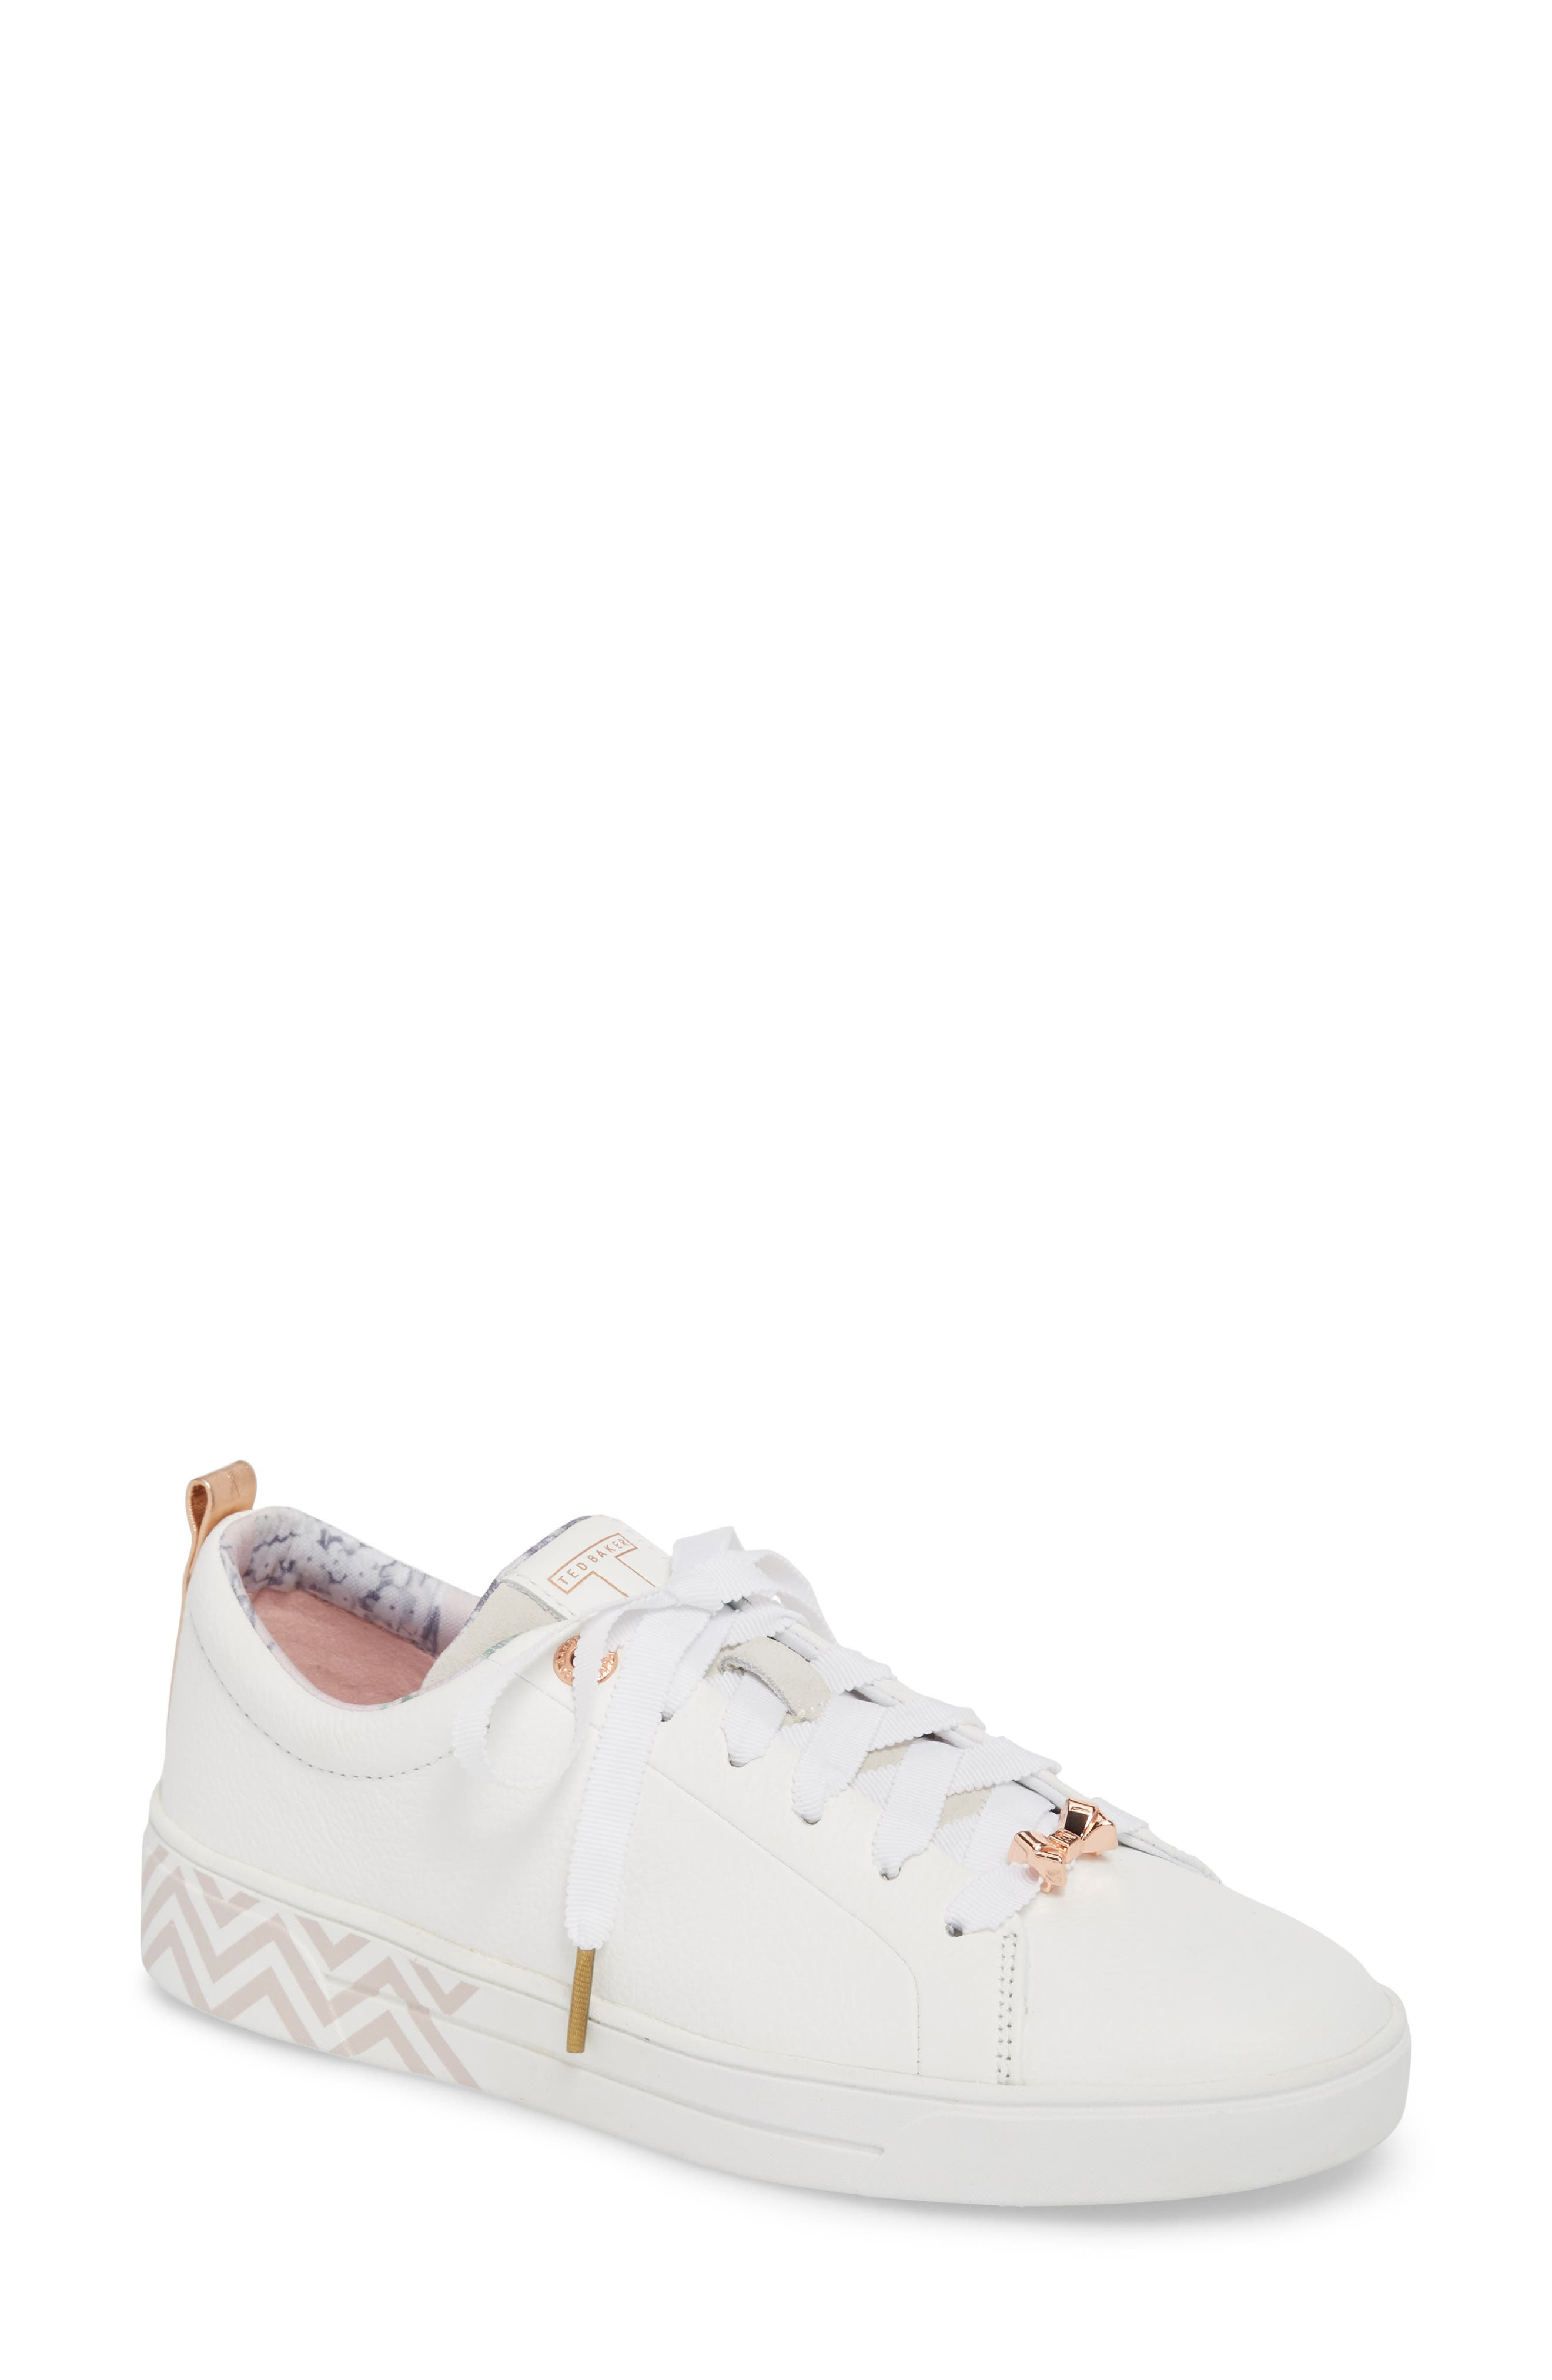 ted baker shoes sneakers trainers club lounge design